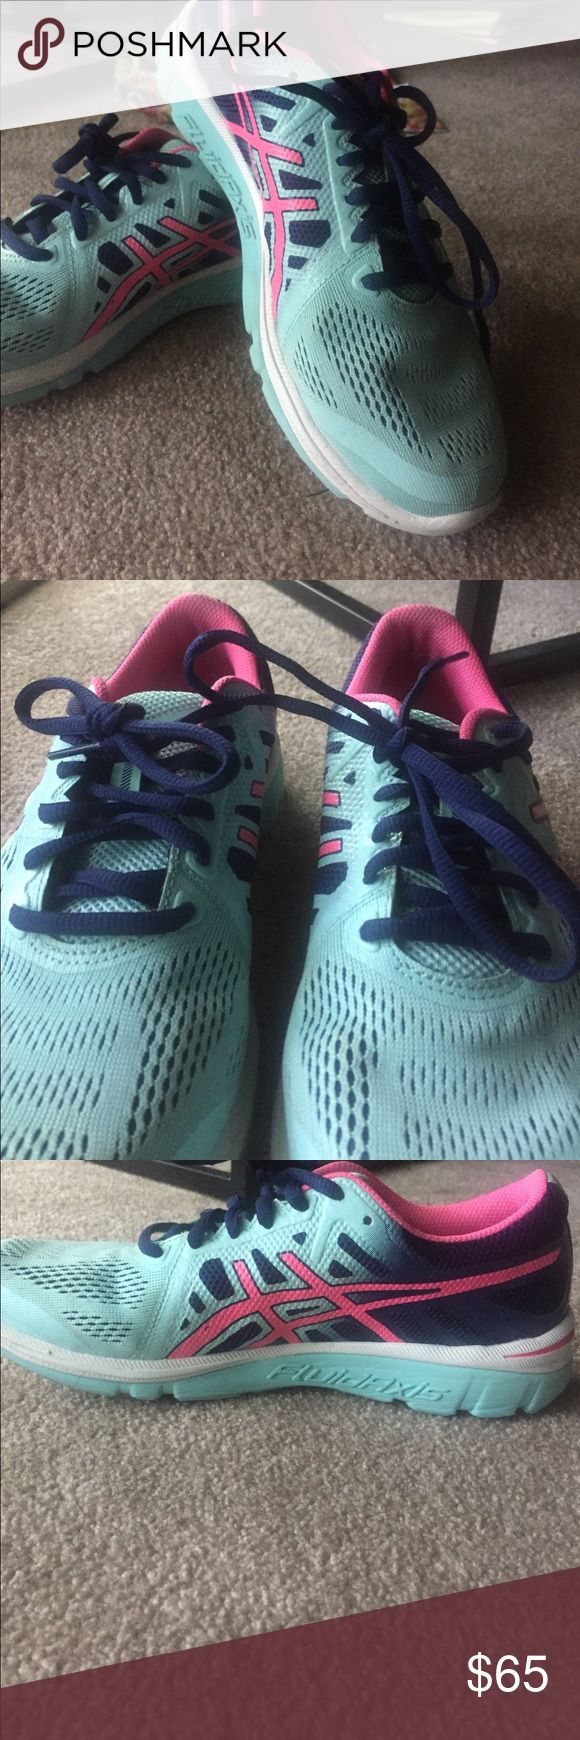 Size 7 Asics Fluid Axis cross training shoe! Asics fluid axis light blue, navy, and pink cross training shoe. Lightly worn but in great shape. Offers welcome! Asics Shoes Athletic Shoes